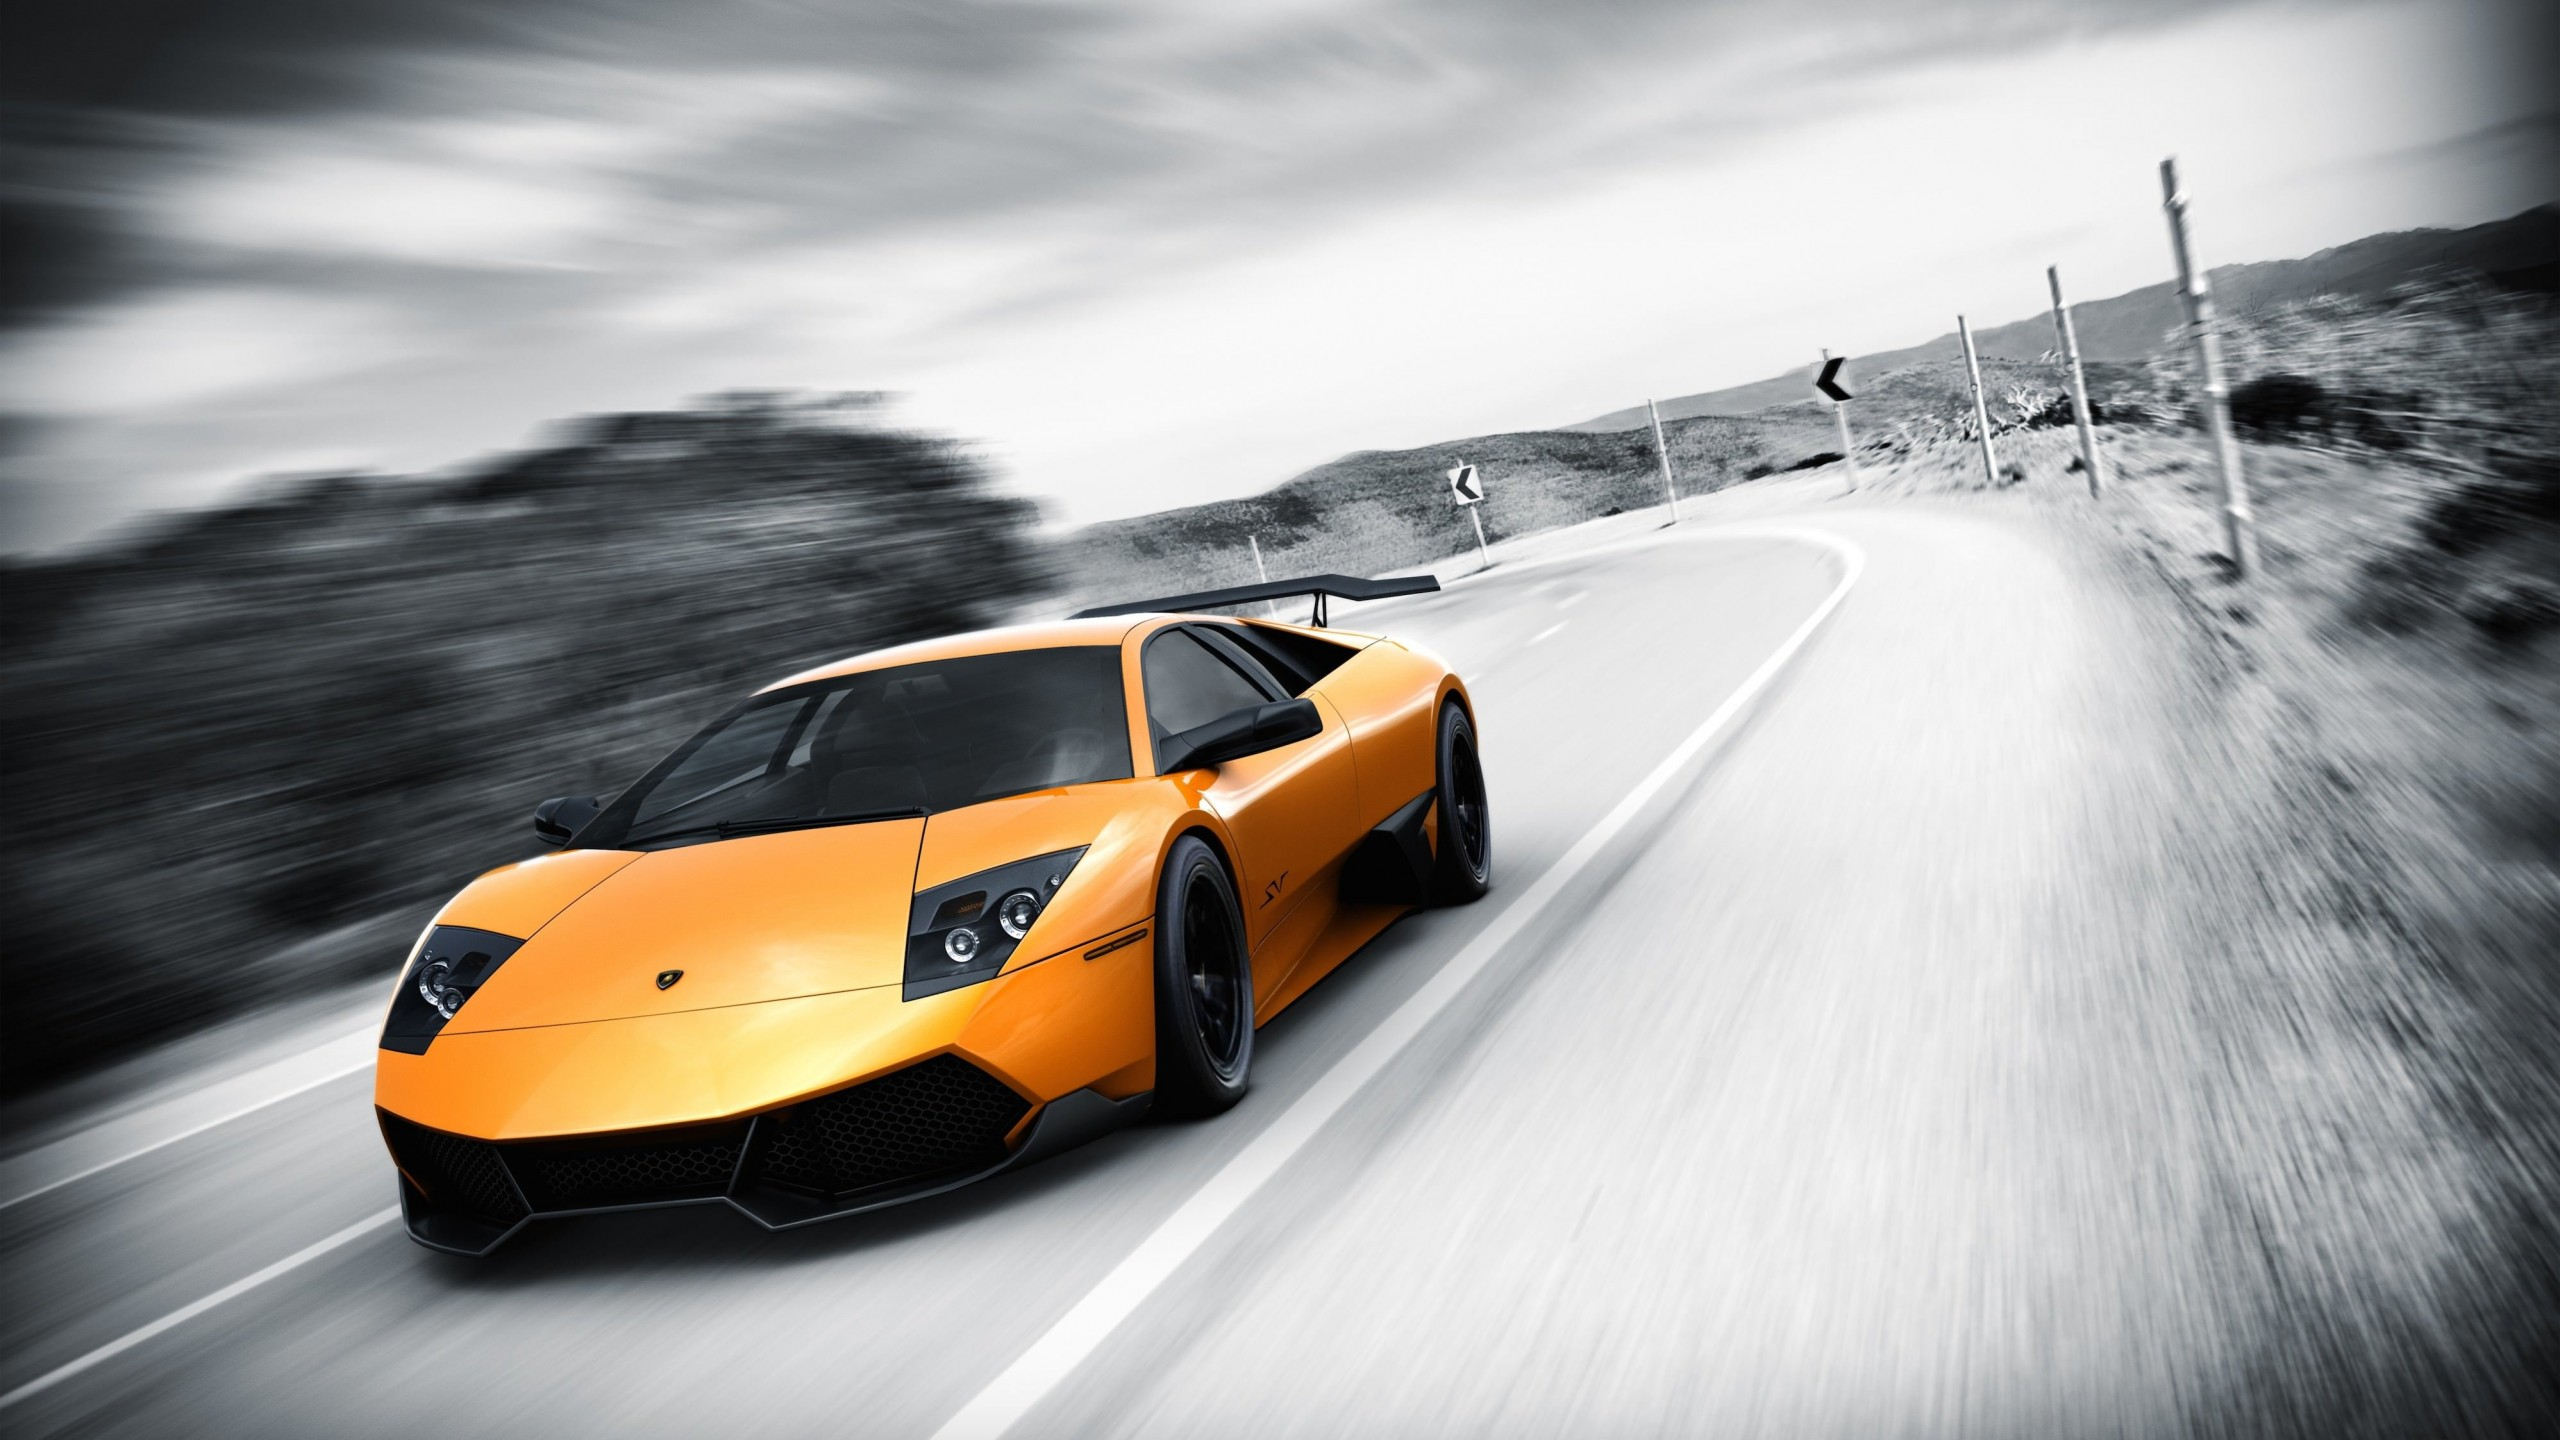 Lamborghini Murcielago LP670 Wallpaper for Desktop 2560x1440